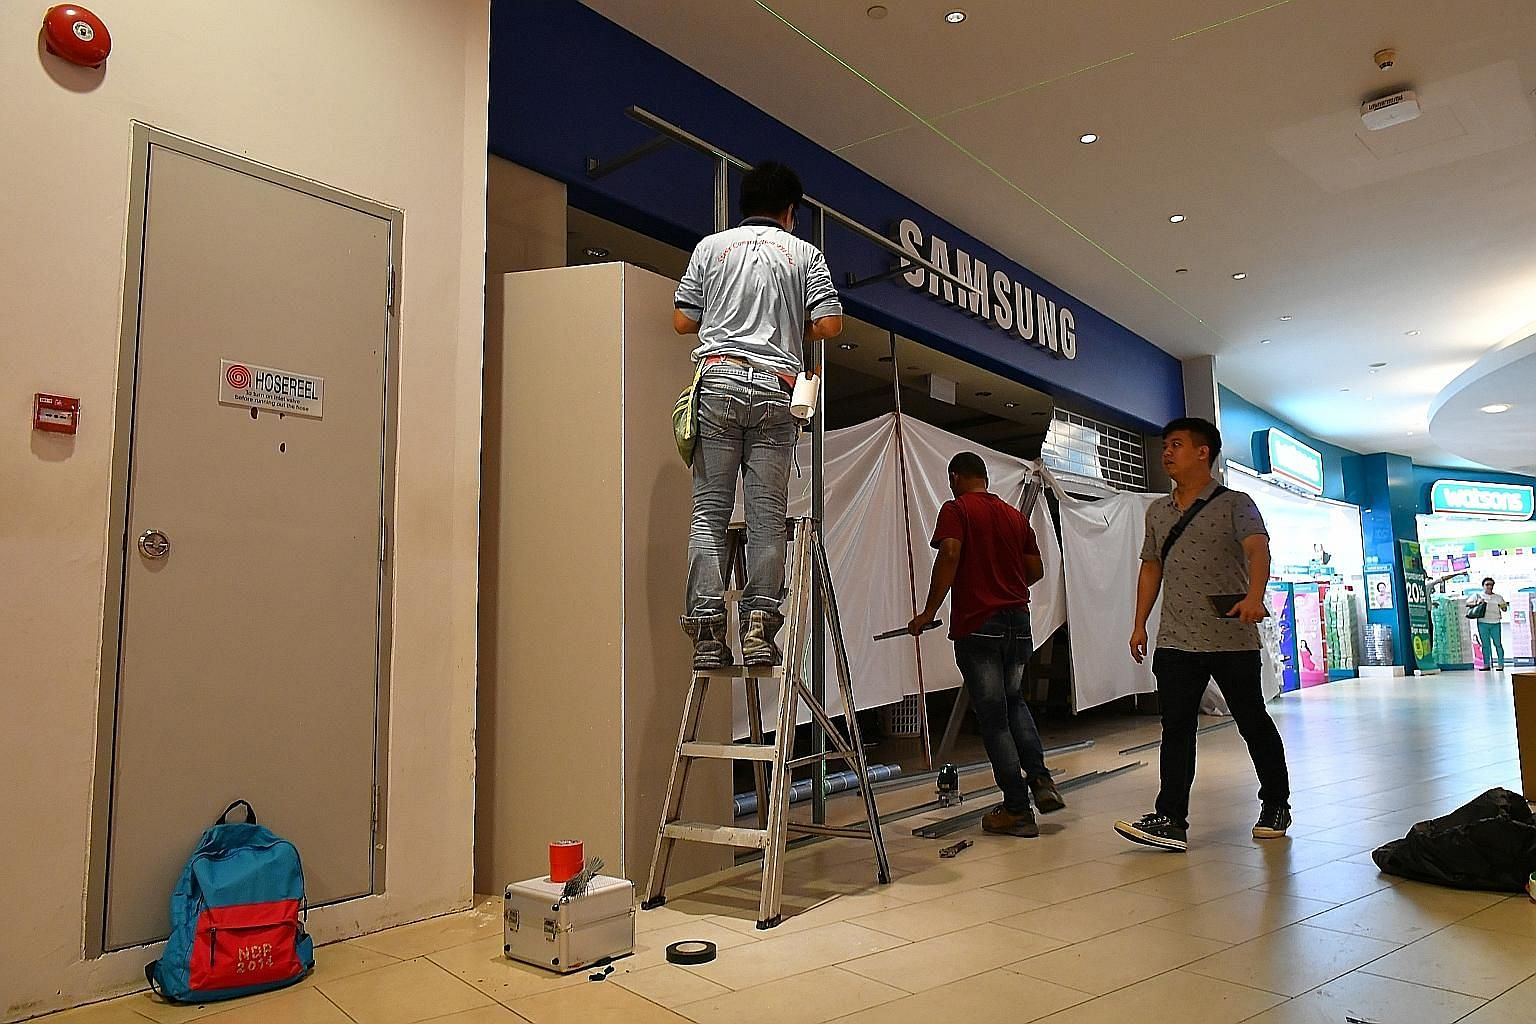 The fire at the Samsung Experience Store in basement one of AMK Hub yesterday involved contents measuring 1m by 2m in the shop's storeroom, said an SCDF spokesman.